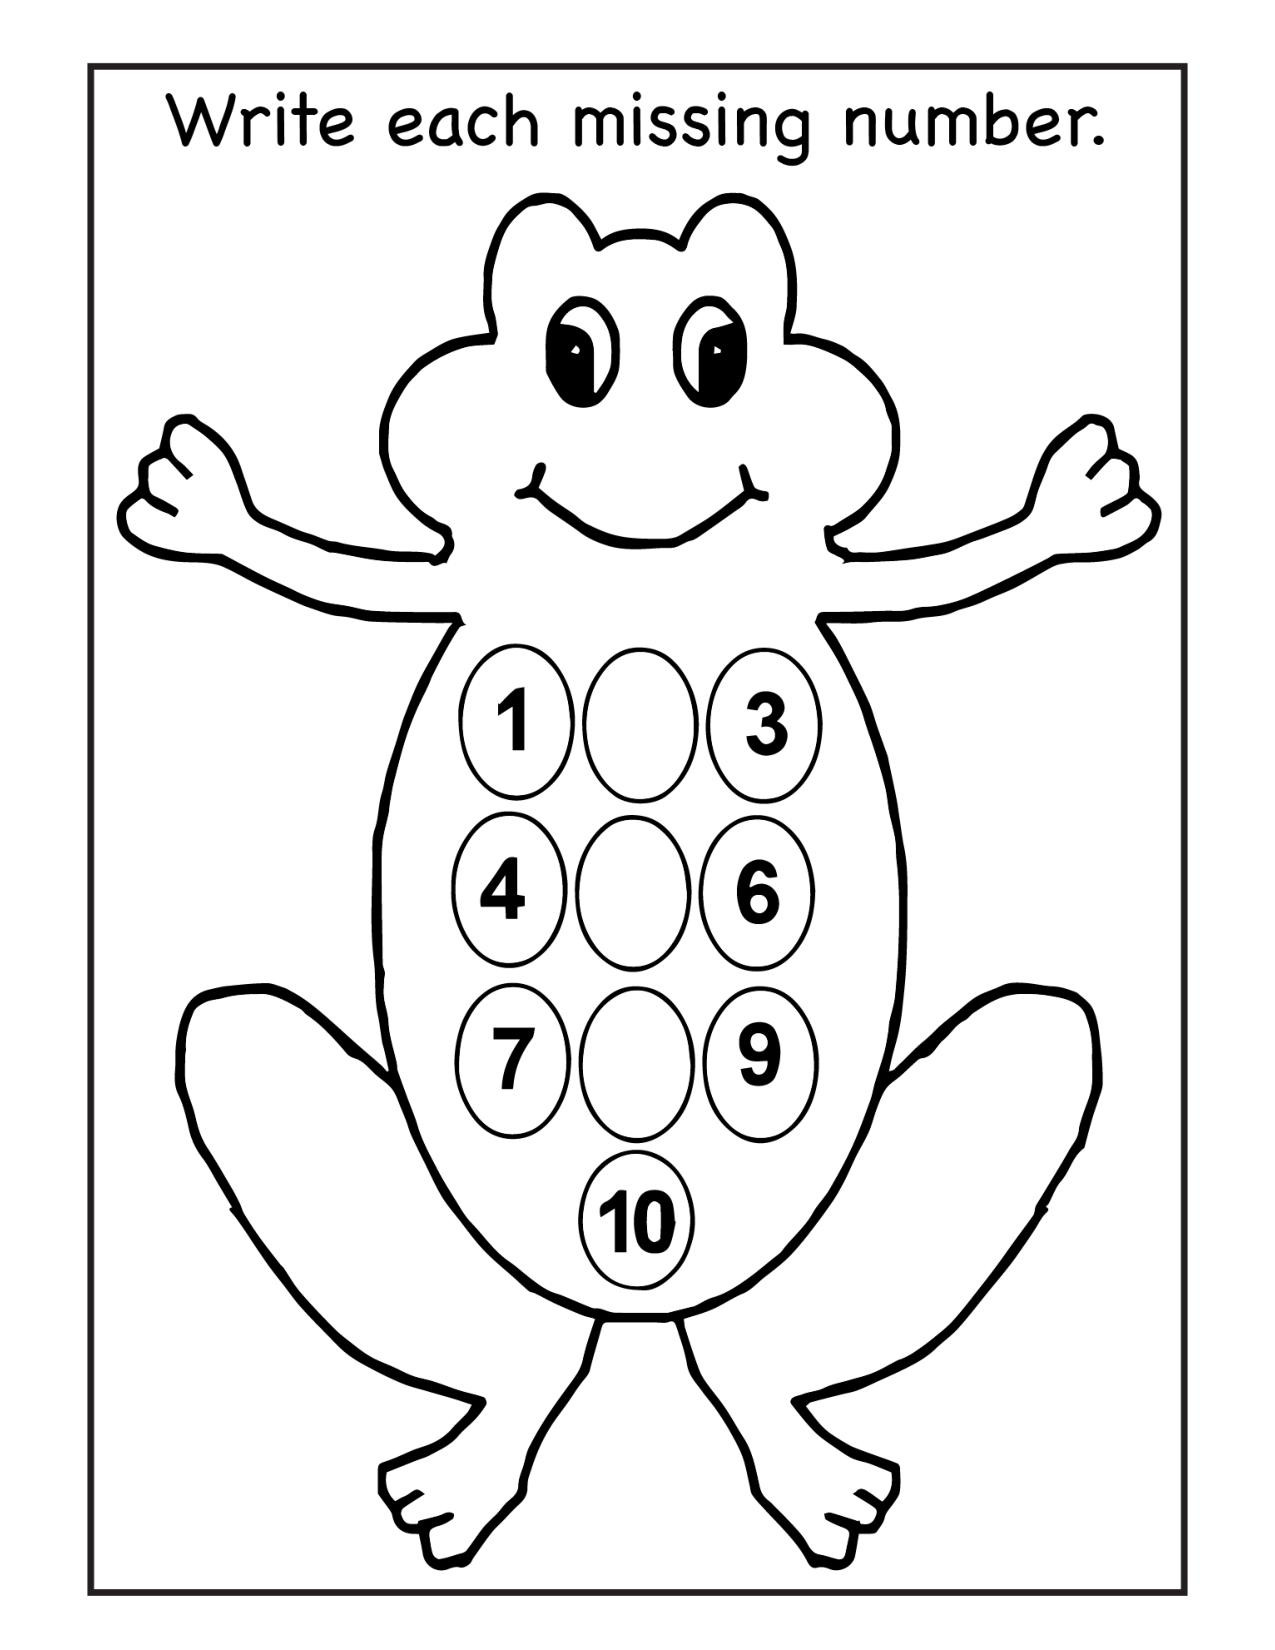 Amphibian Worksheets for Second Grade Number Worksheet Missing Printable Worksheets and Numbers to